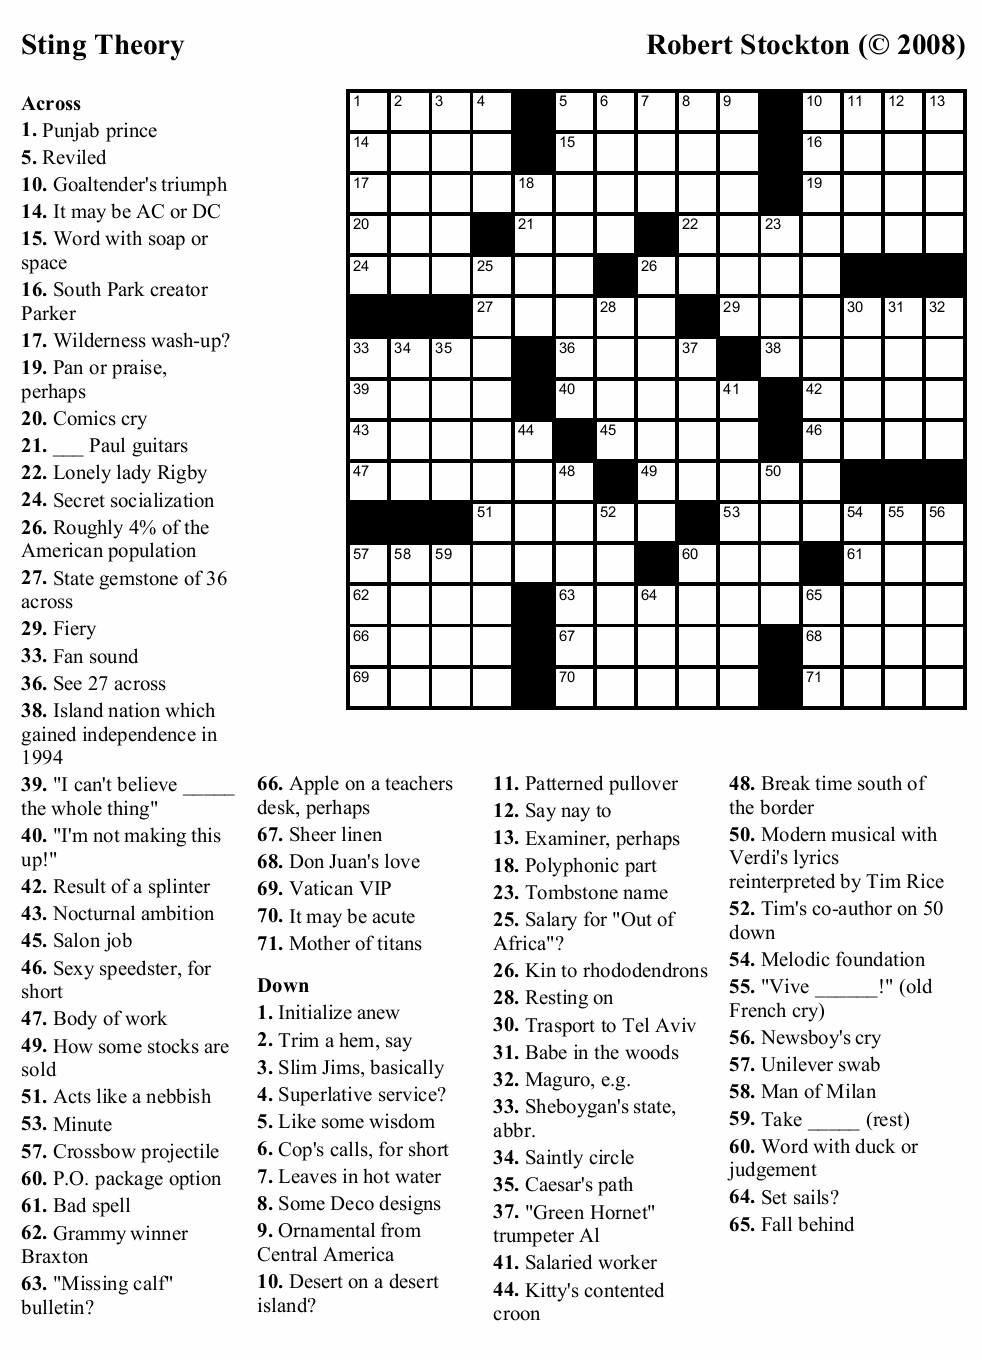 This is a graphic of Irresistible Printable Crossword Puzzles Hard